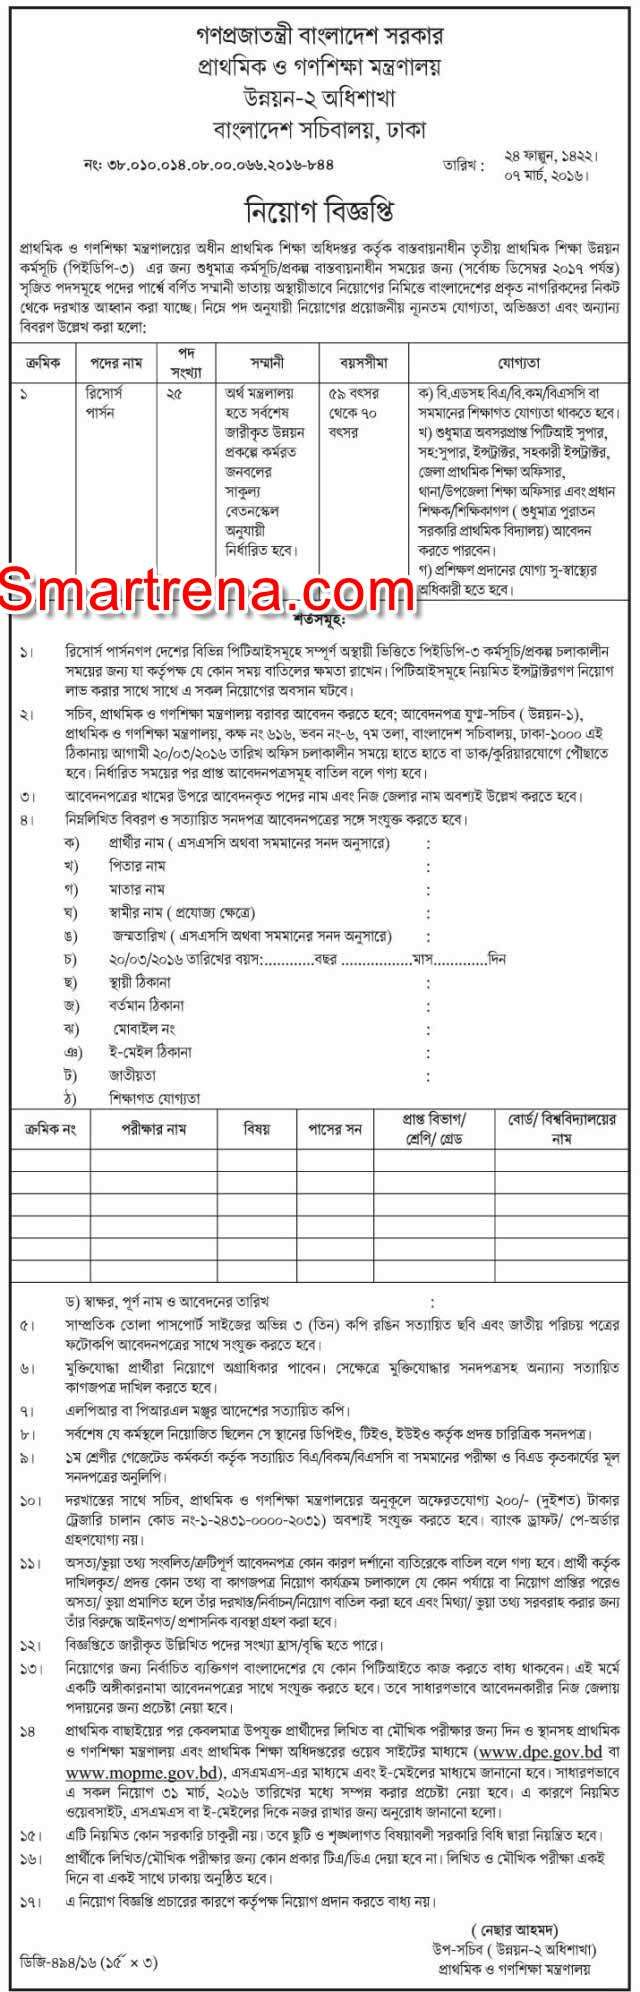 mejores ideas sobre job circular en ministry of primary and mass education job circular 2016 ministry of primary and mass education published